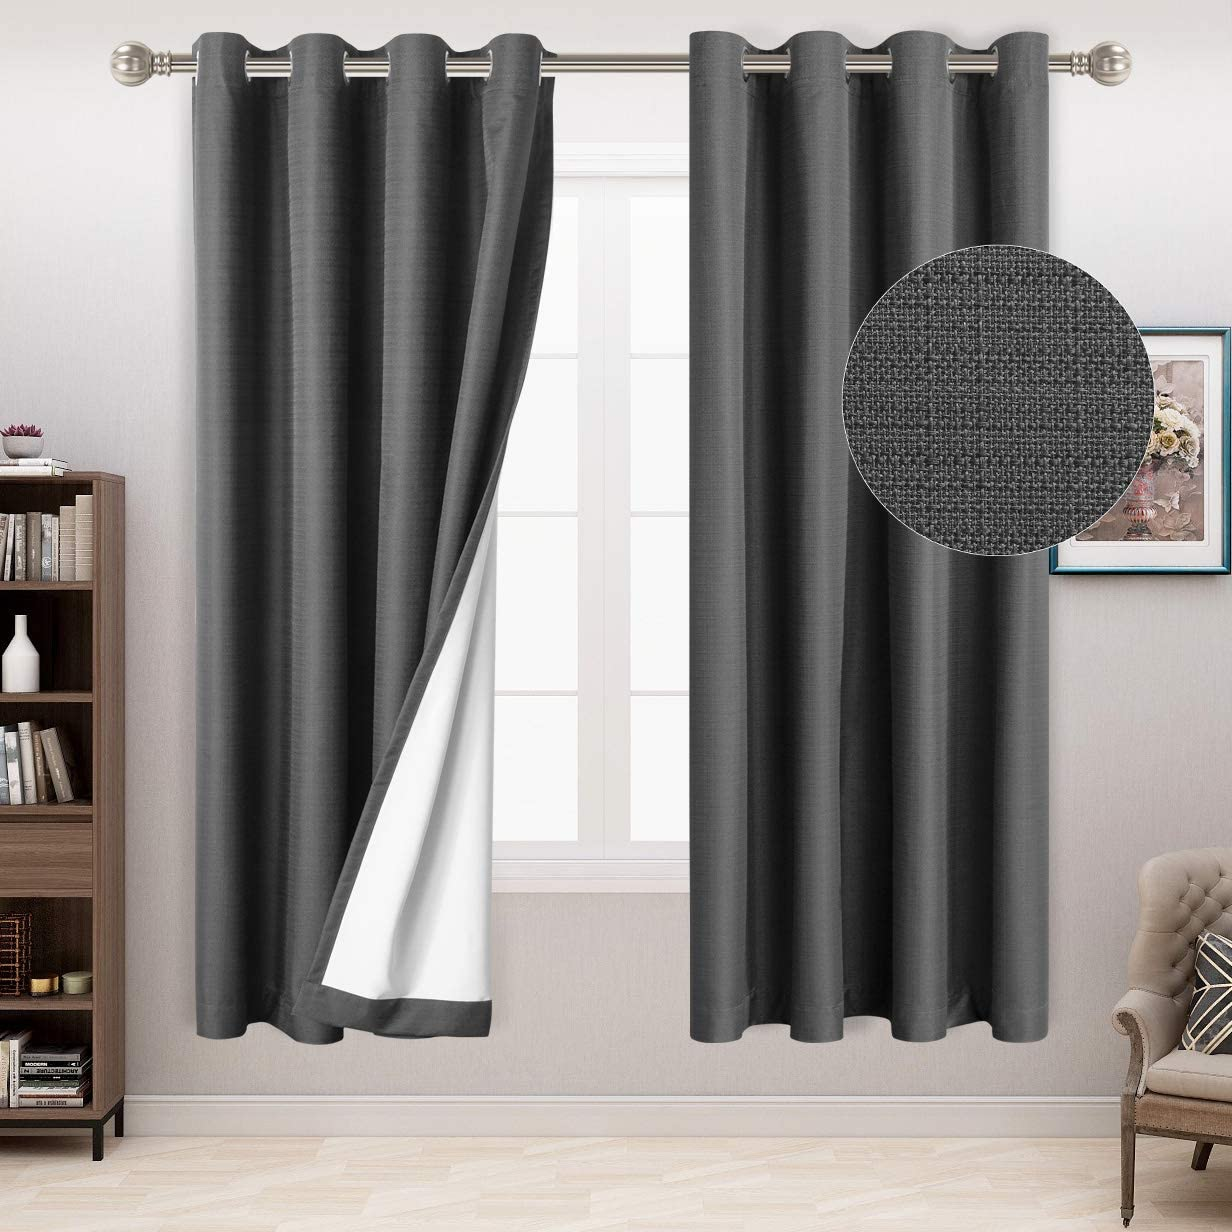 San Diego Mall LORDTEX 100% Blackout Curtains for Linen Bedroom Textured - OFFer Faux